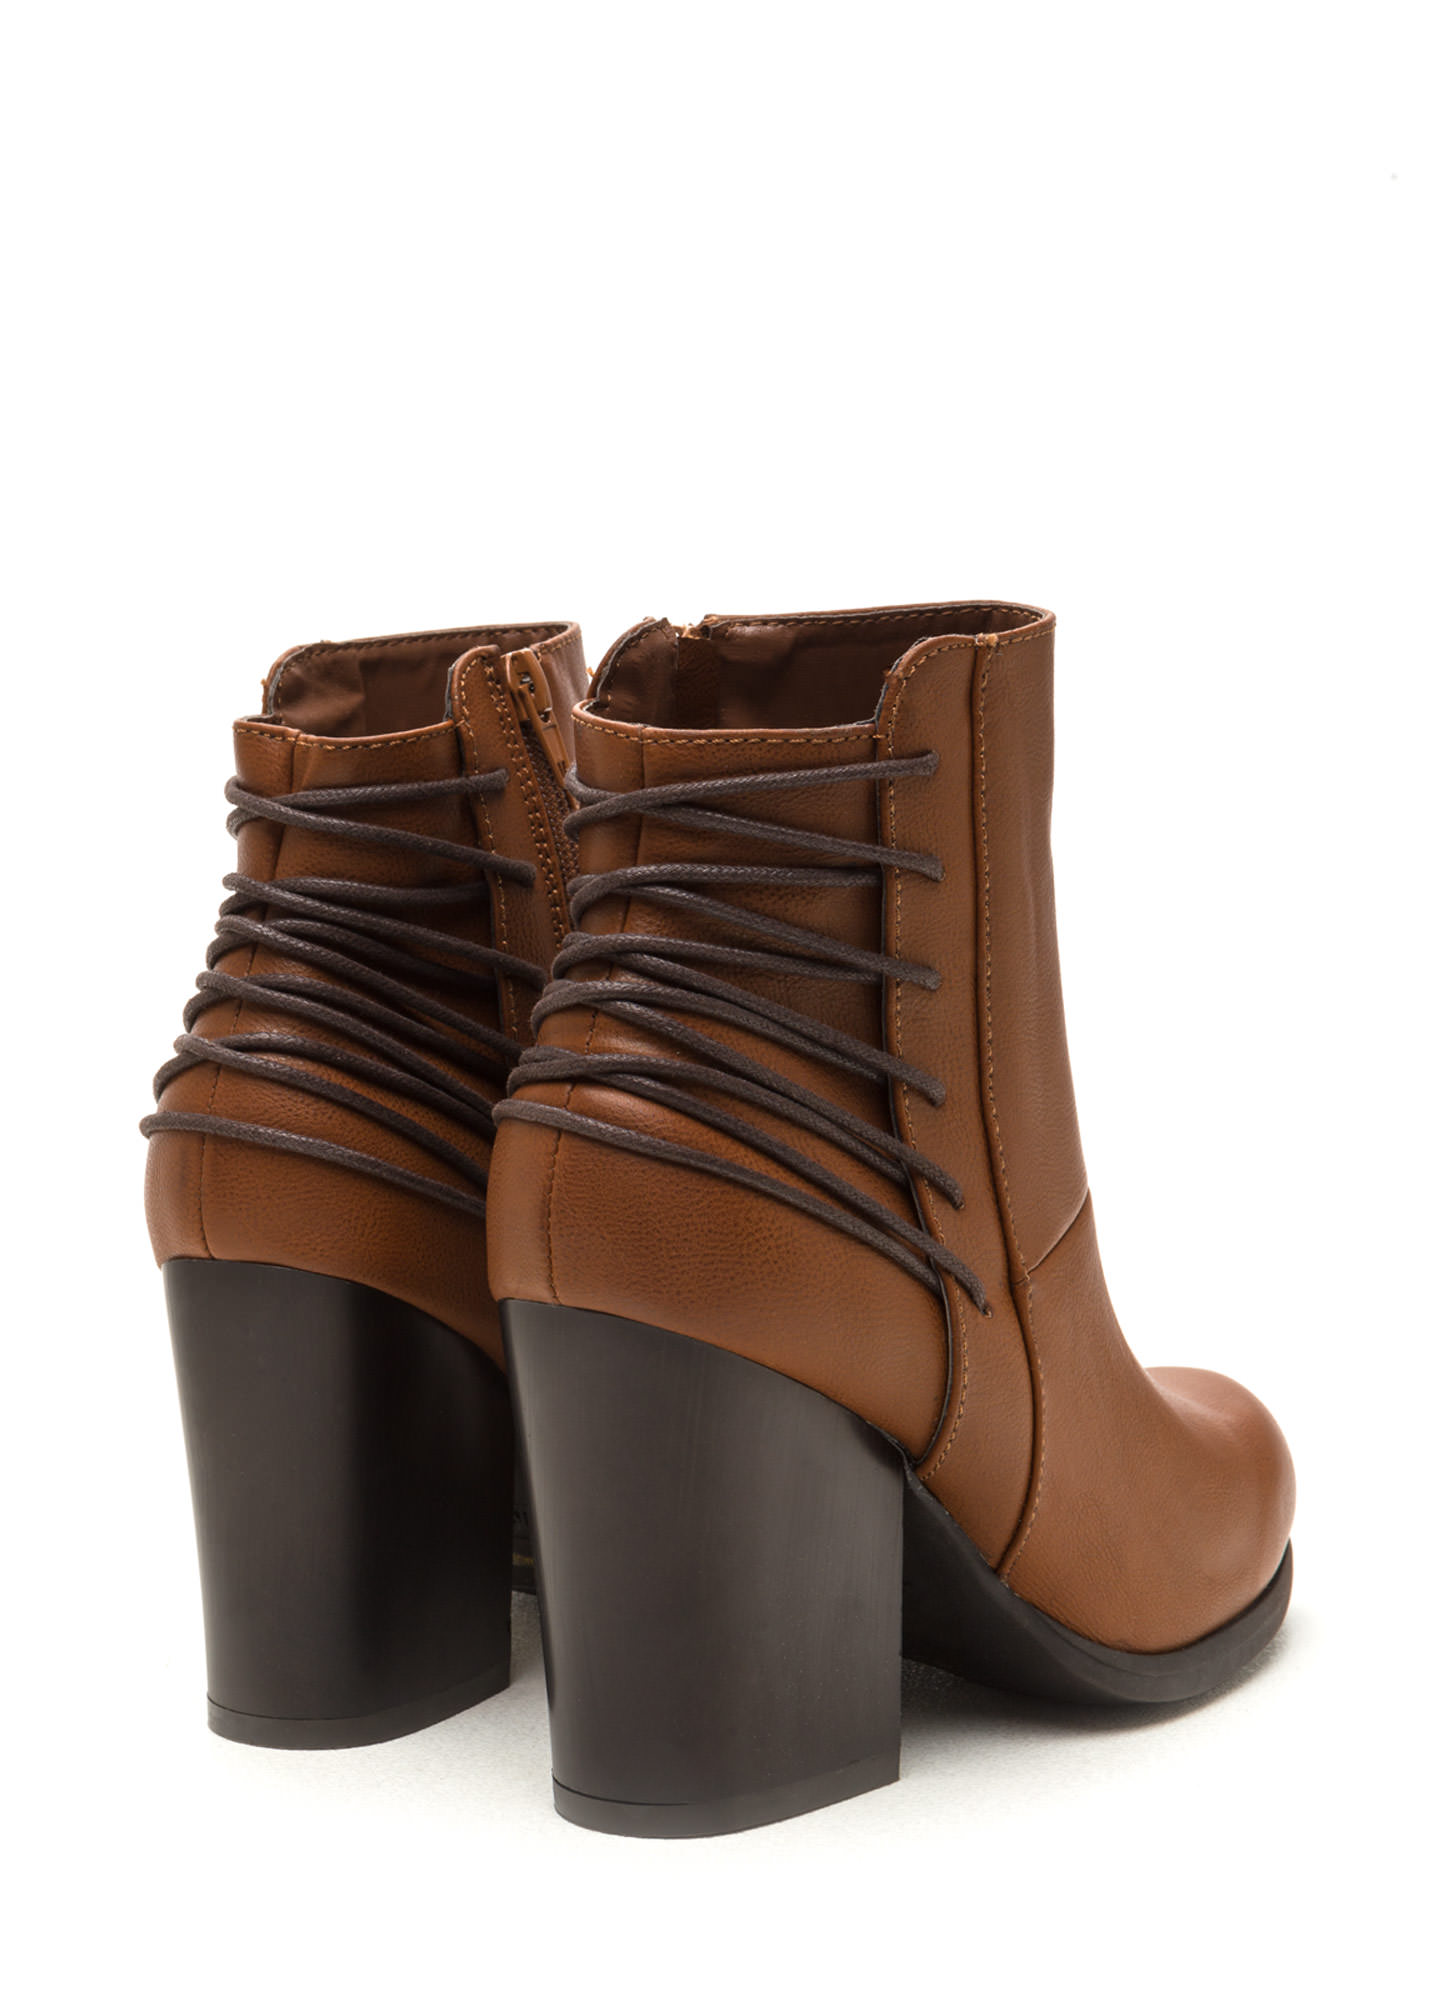 Say Hello Laced Back Block Booties CHESTNUT